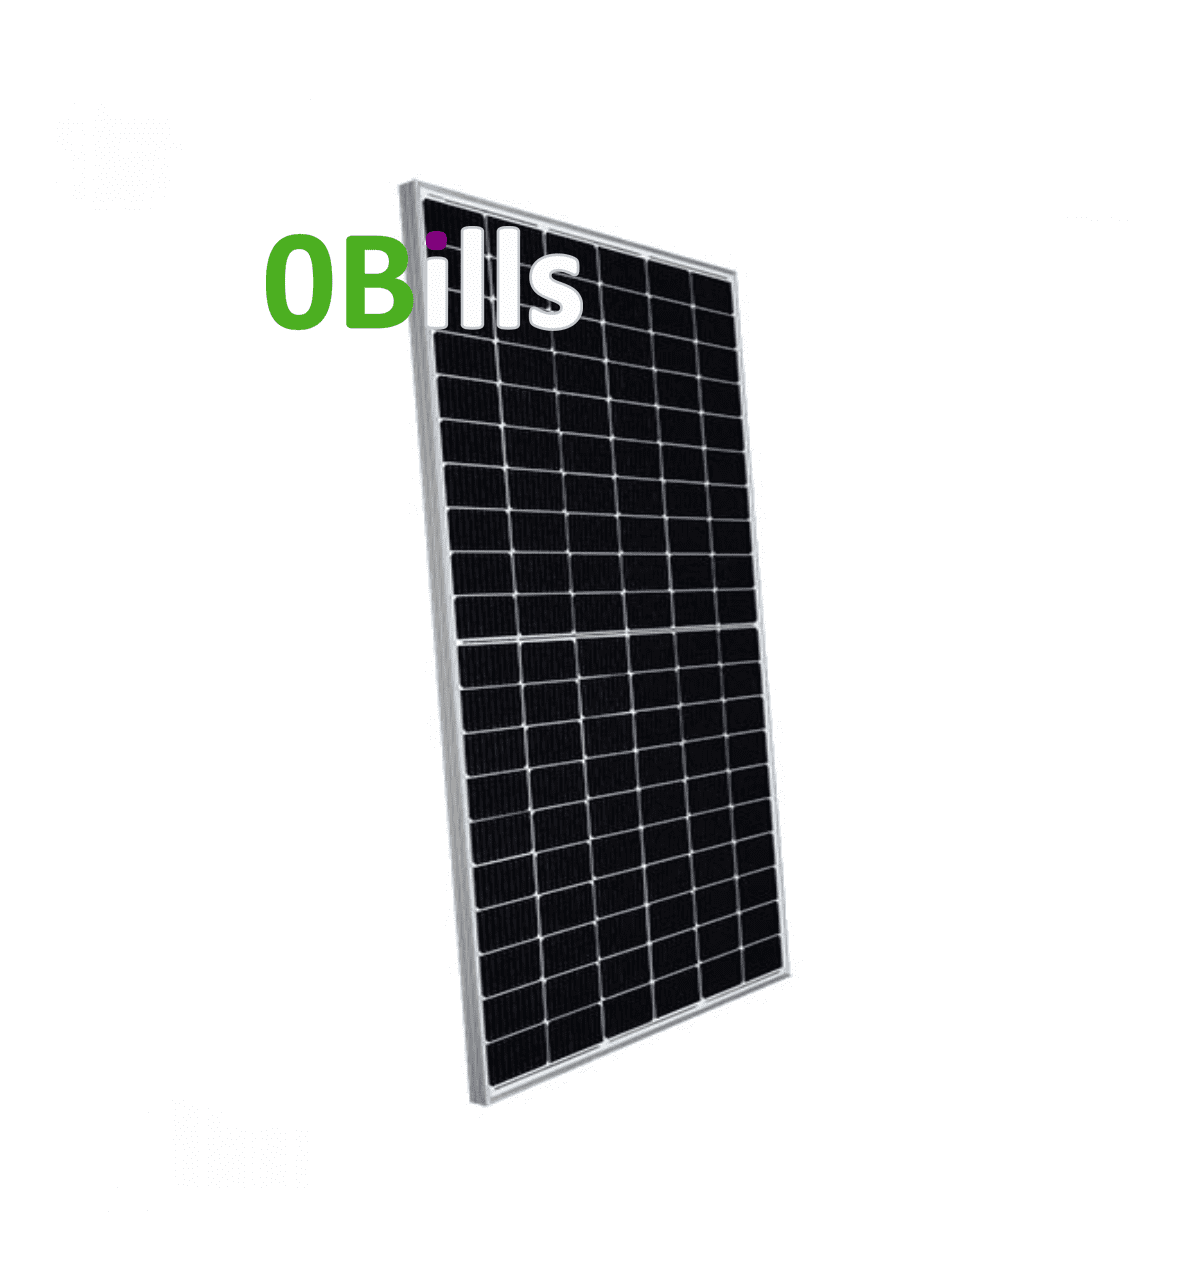 Suntech Power Ultra S 375W Solar Panel STP375S-B60-Wnh